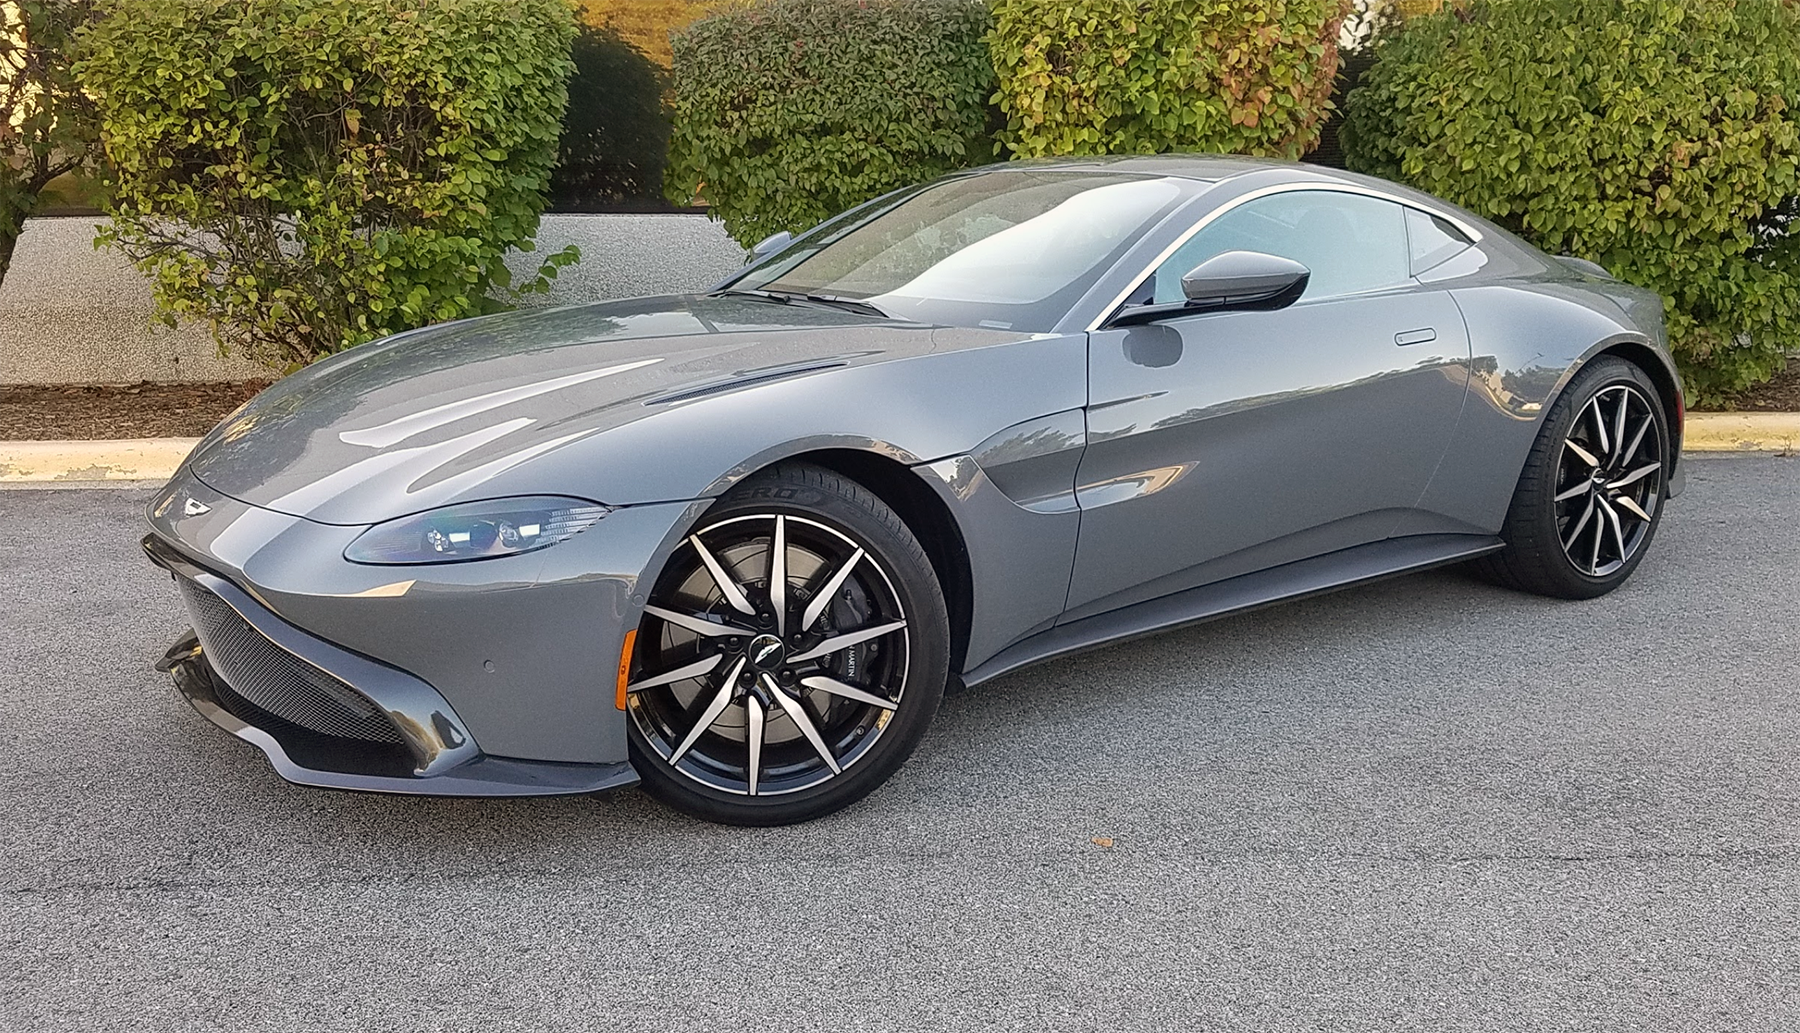 Test Drive 2020 Aston Martin Vantage Coupe The Daily Drive Consumer Guide The Daily Drive Consumer Guide